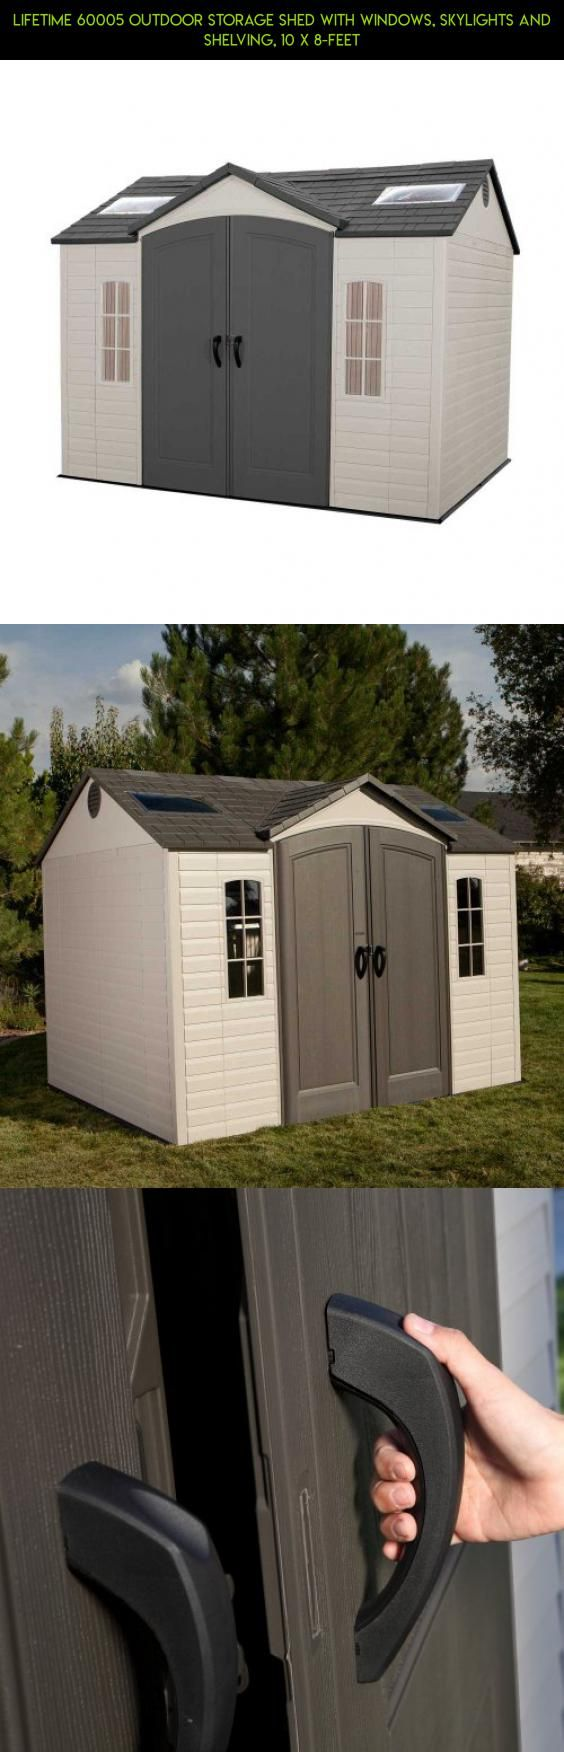 Lifetime 60005 outdoor storage shed with windows skylights and shelving 10 x 8